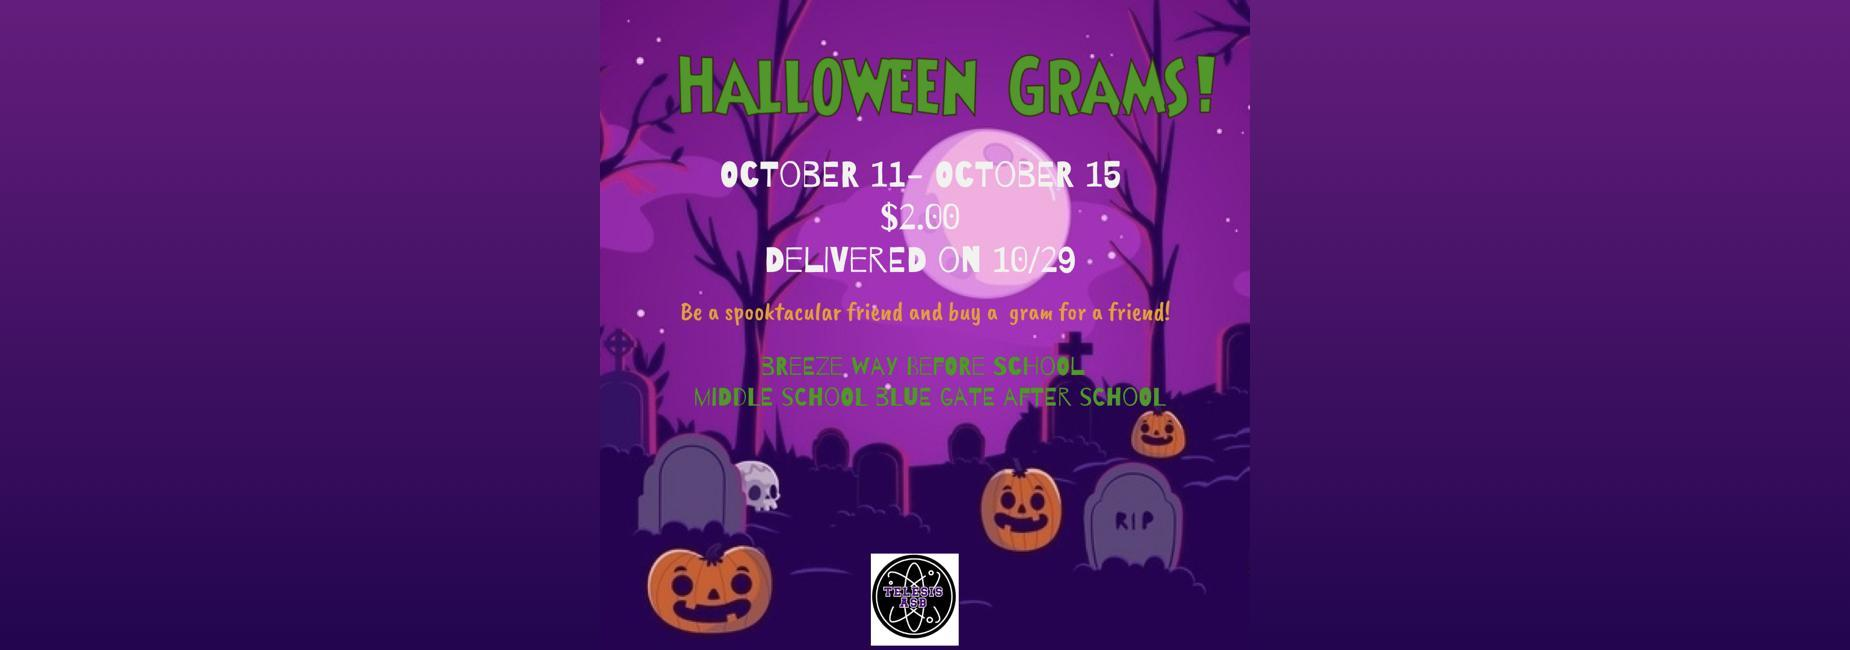 Spooky flyer announcing the sale of Halloween Grams!